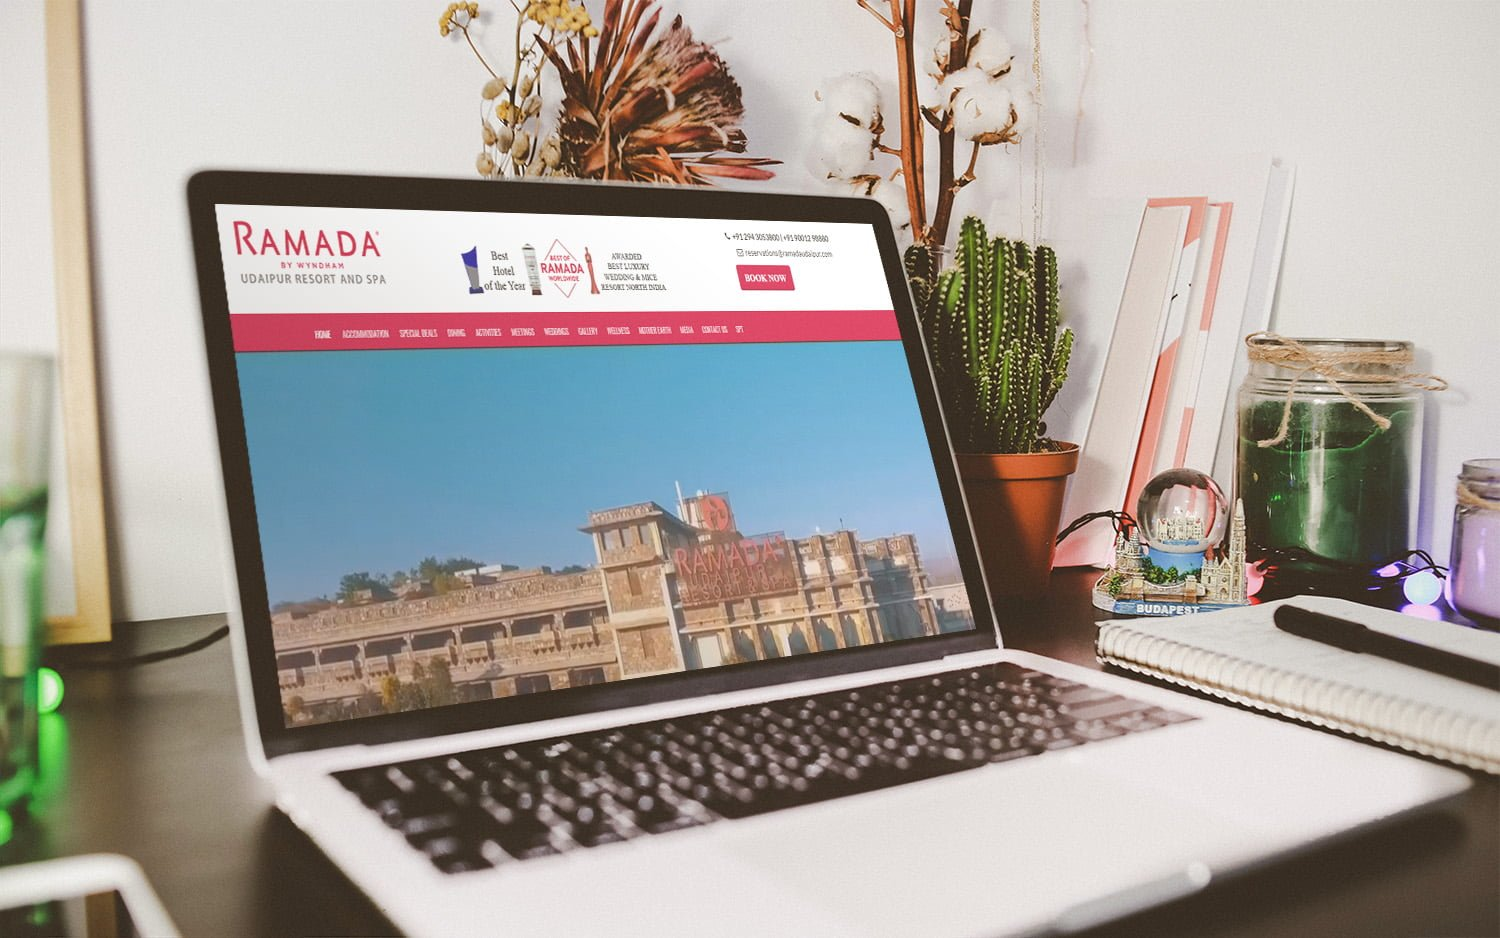 Ramada Udaipur Digital Marketing